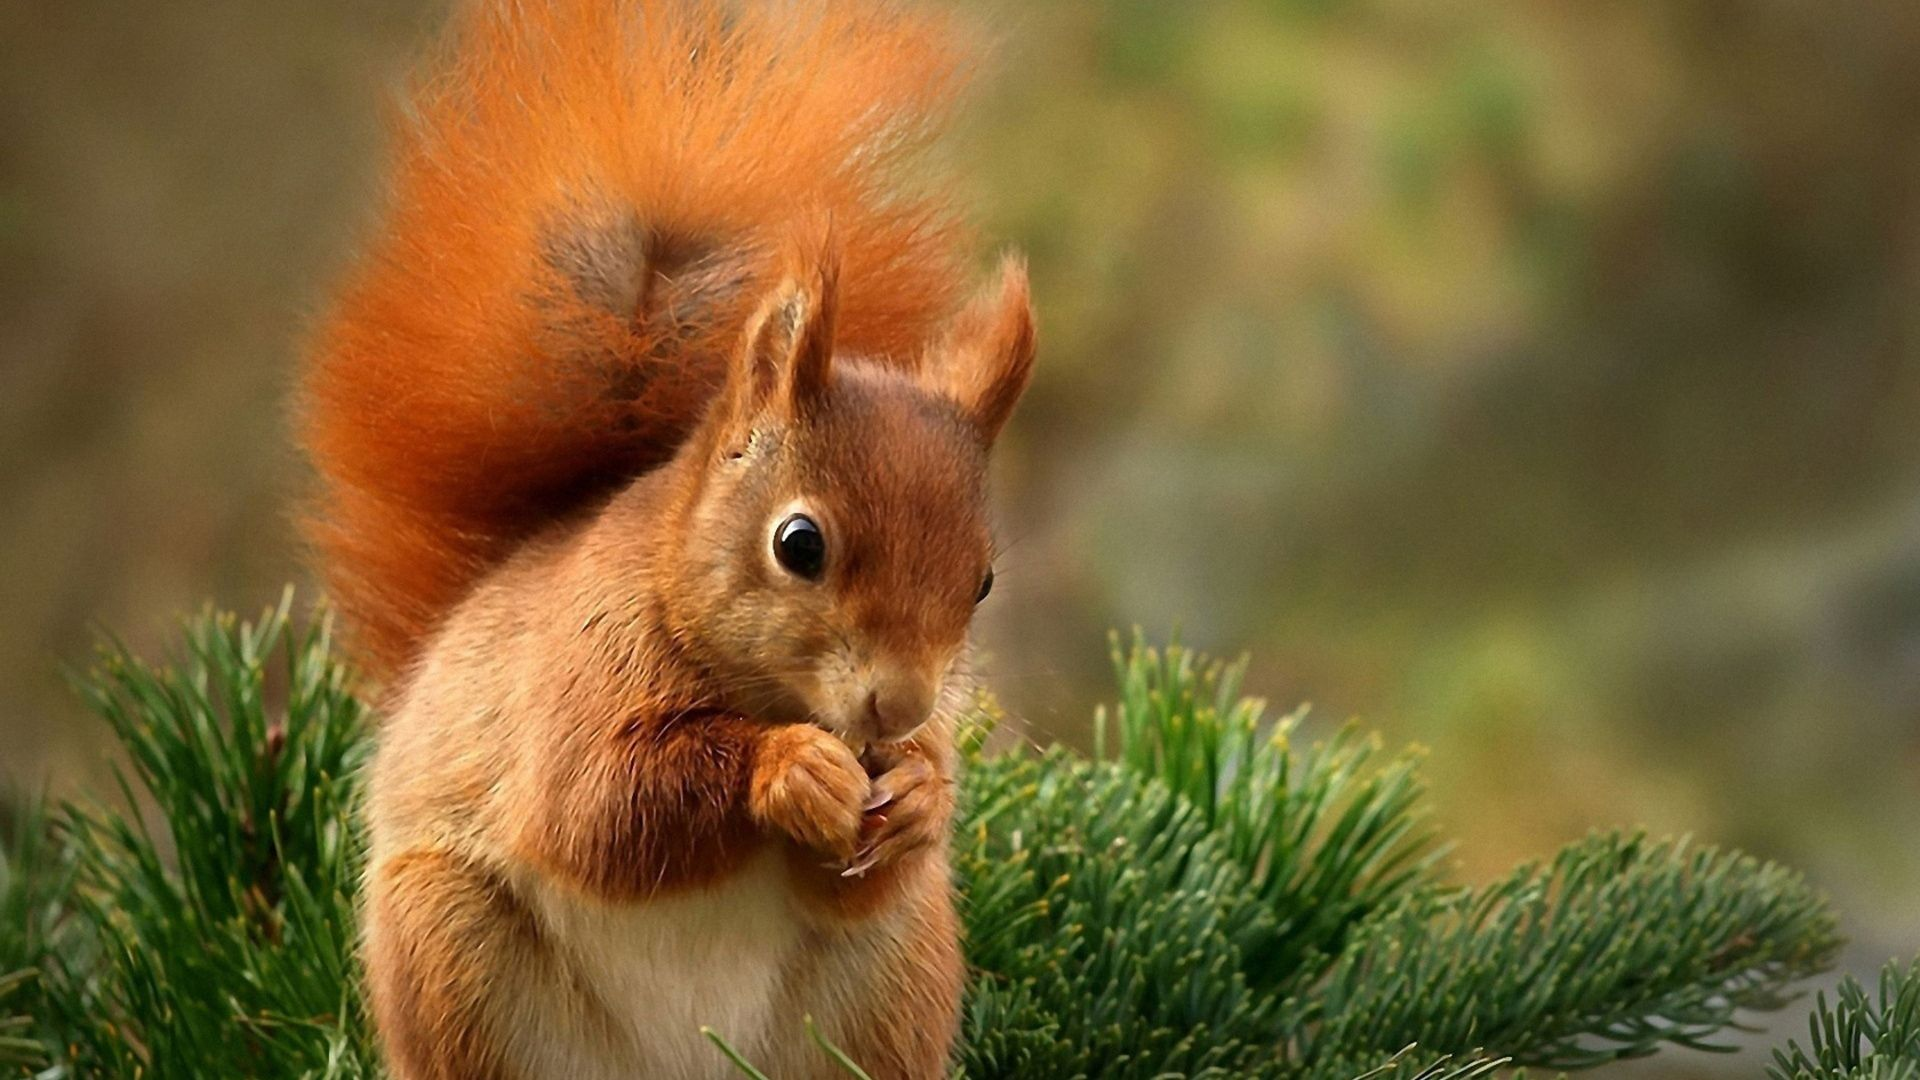 Pictures Of Squirrels